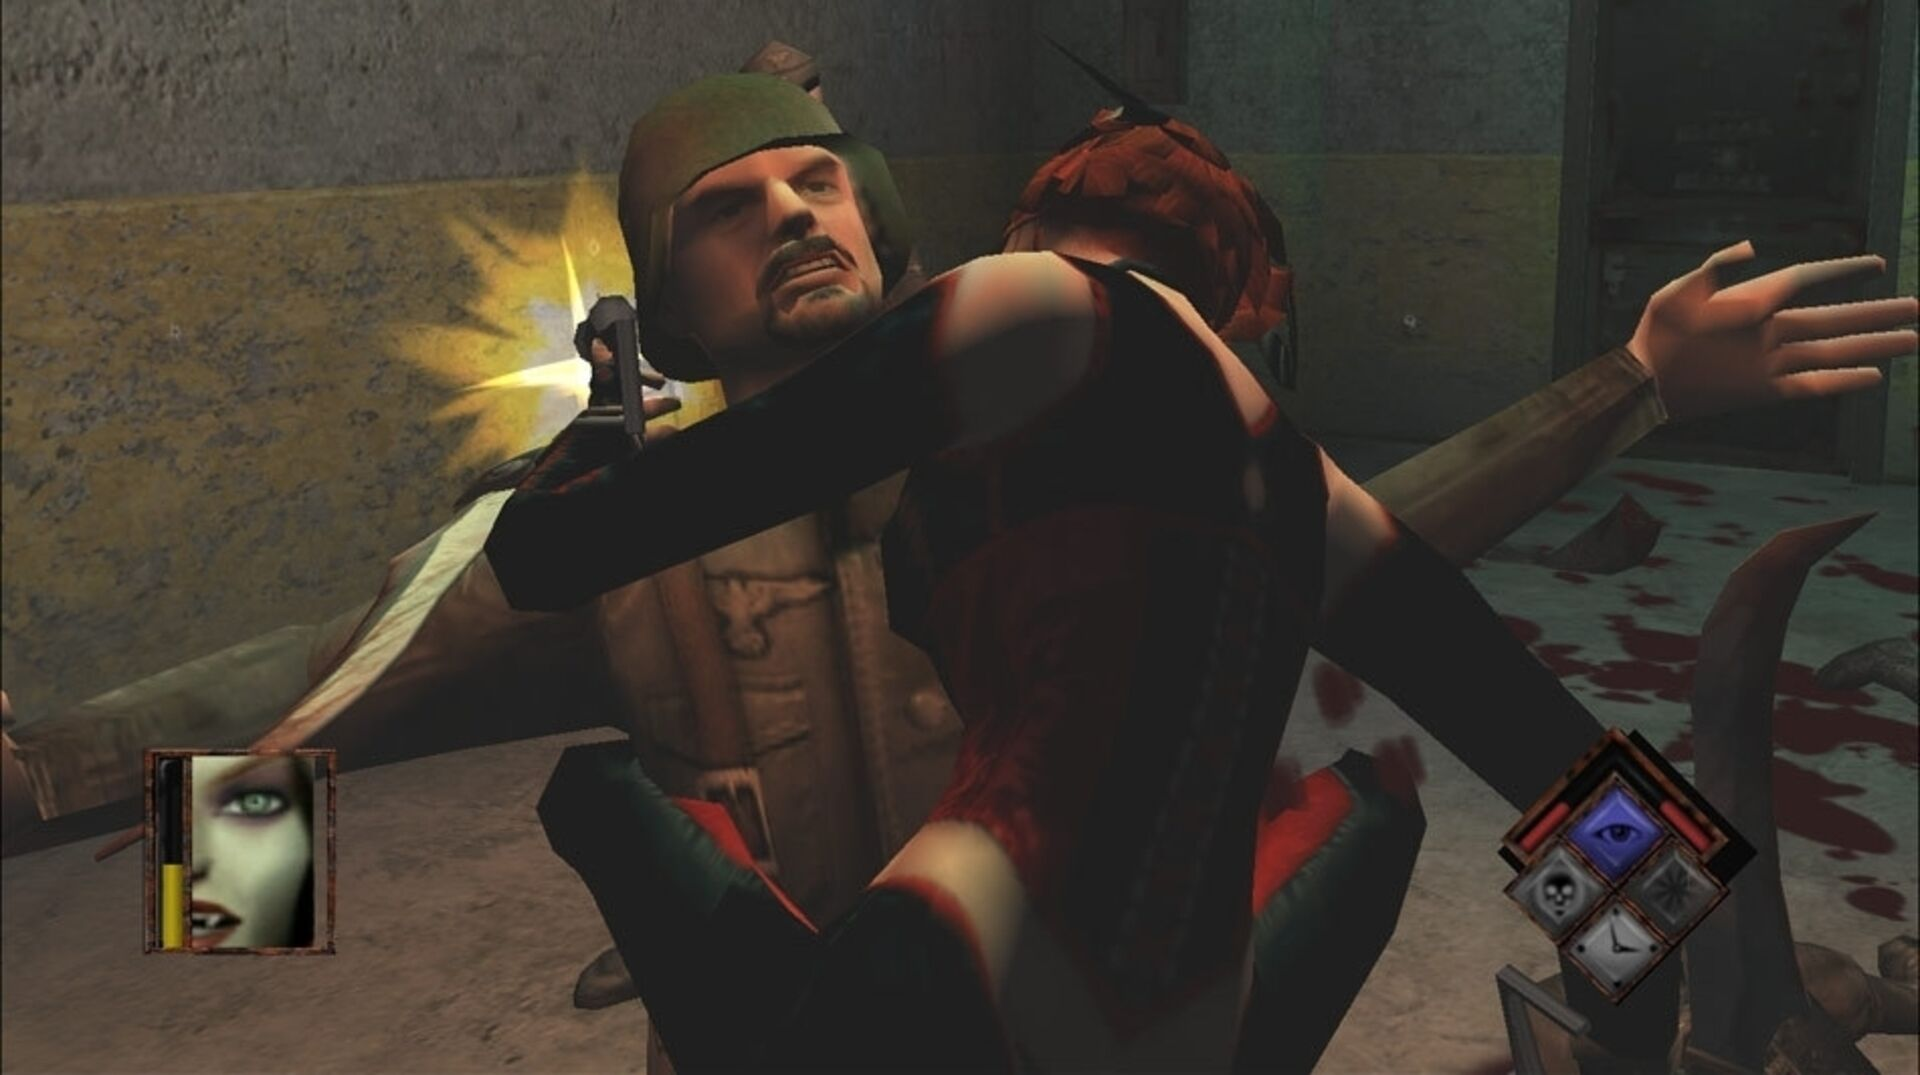 A Company Is Bringing Bloodrayne Back Eurogamer Net